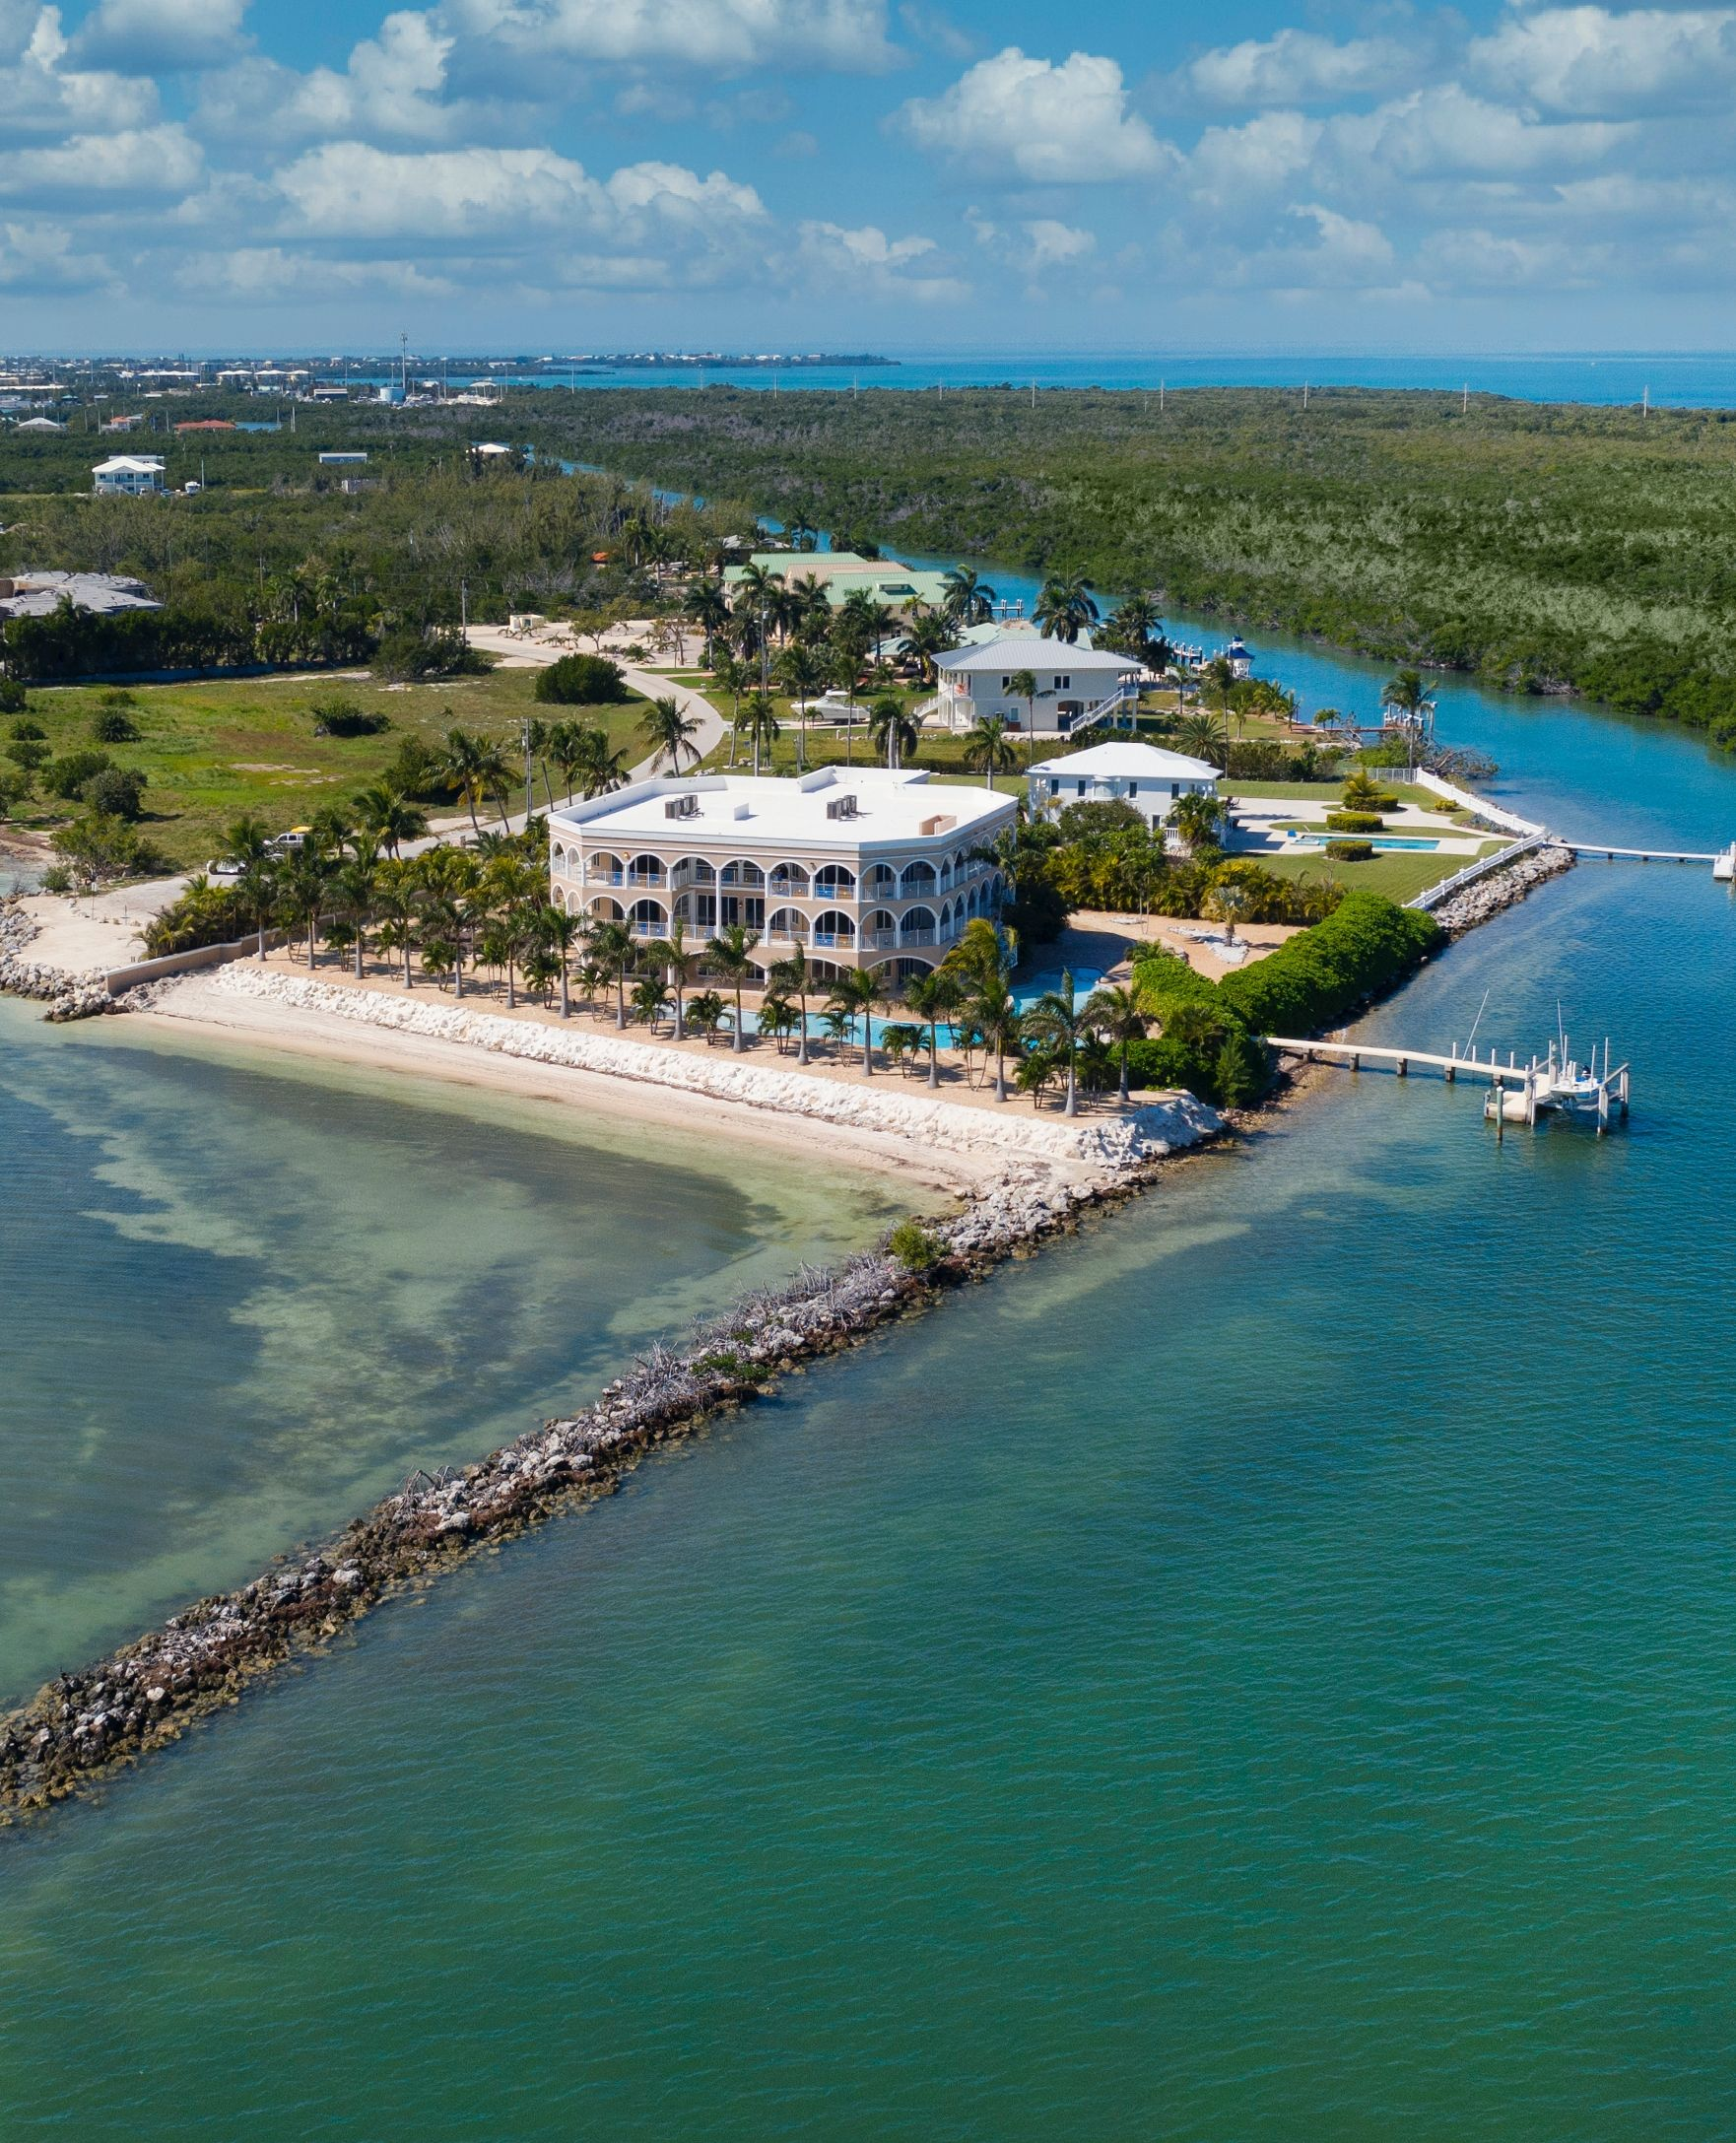 According To The Homeowner Mark Pieloch This Property Offers The Ideal Opportunity To Unwind And Enjoy A Marg Real Estate Site Mansions For Sale Real Estate